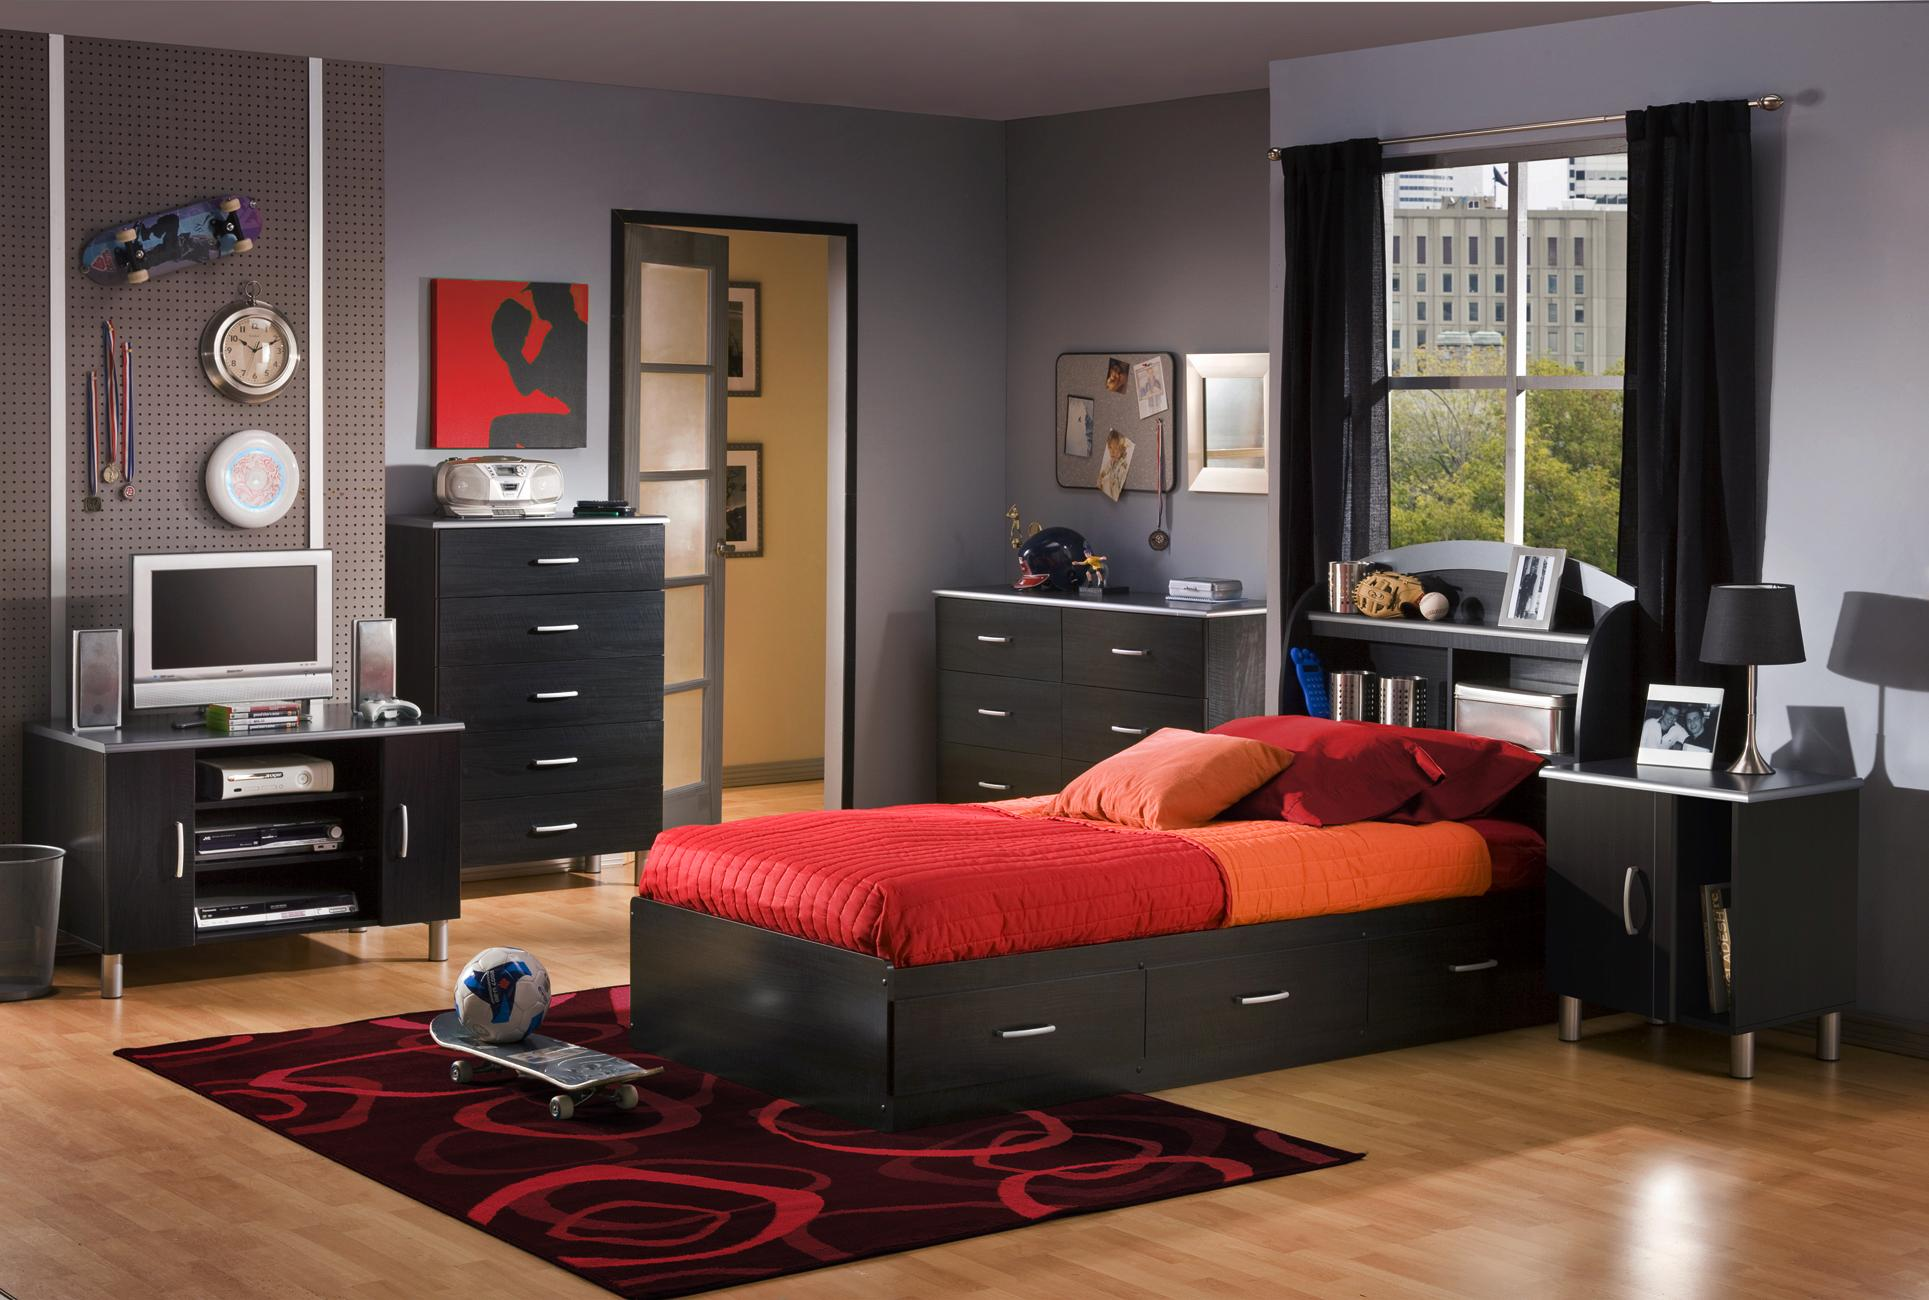 South Shore Bedroom Furniture South Shore Furniture Cosmos Collection Double Dresser Black